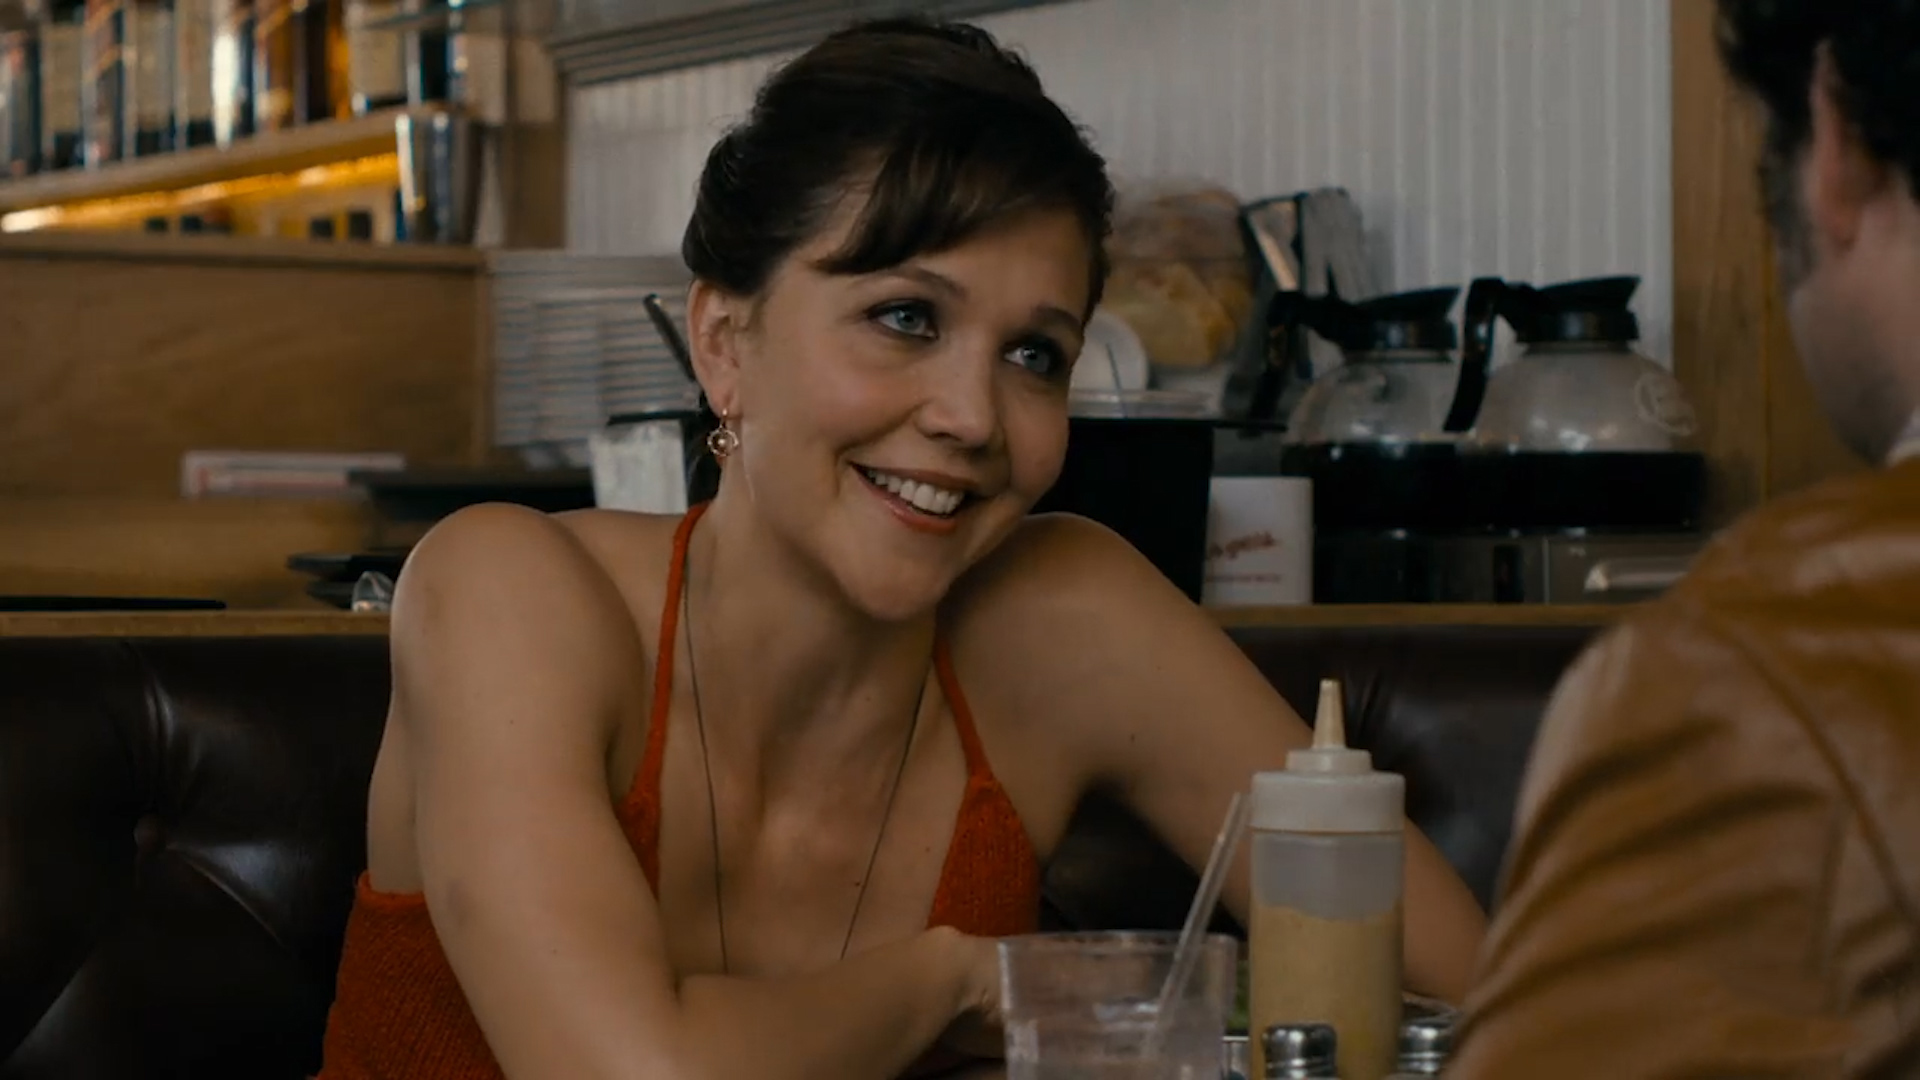 maggie-gyllenhaal-visited-a-porn-set-to-research-the-deuce-social.jpg